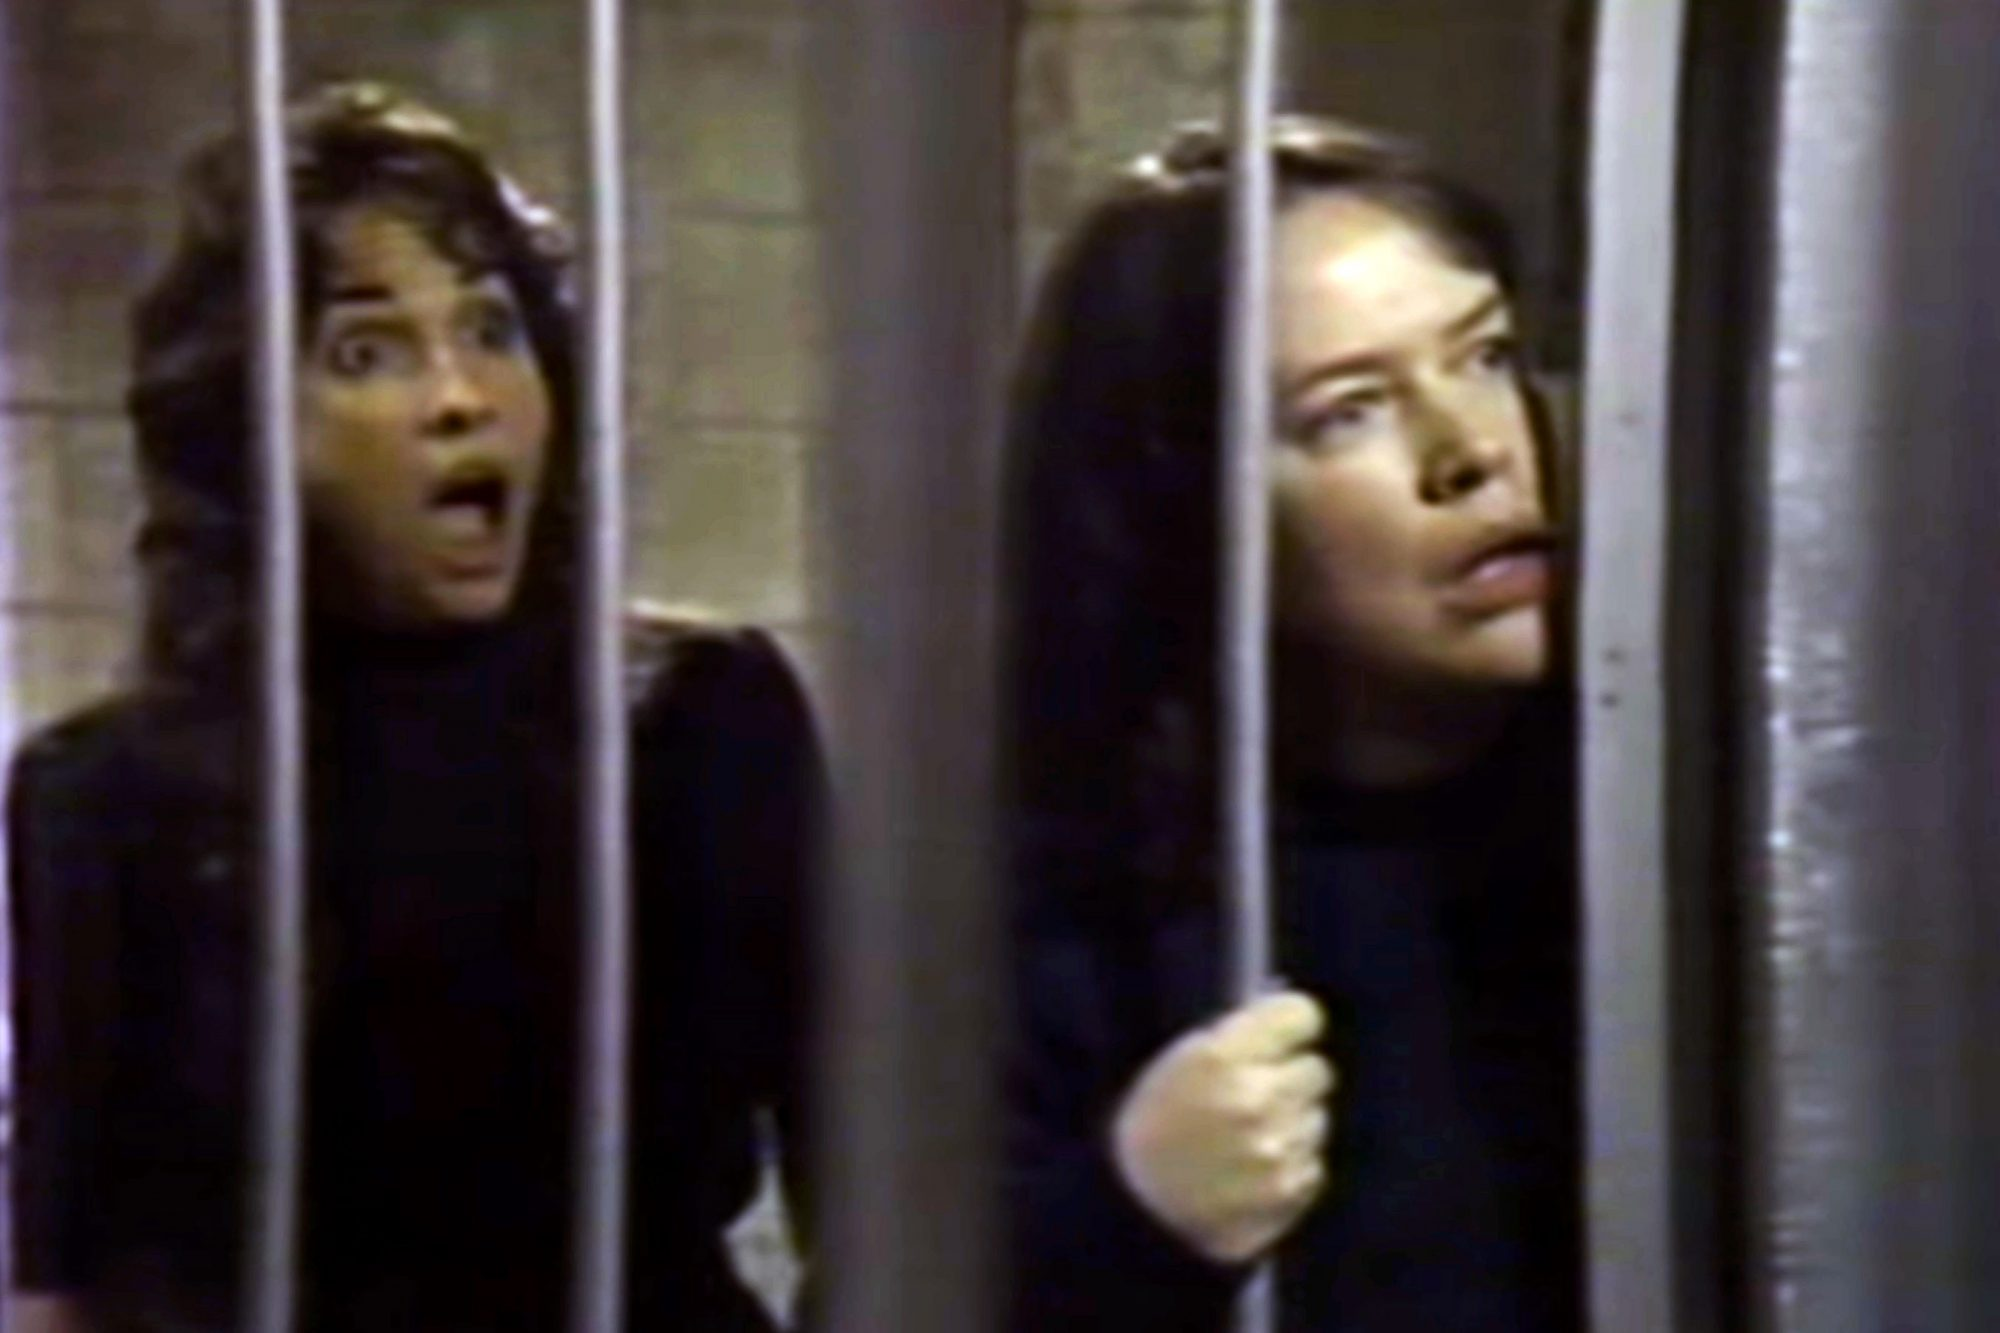 All My Children (1983)Susan Lucci and Kathy Bates